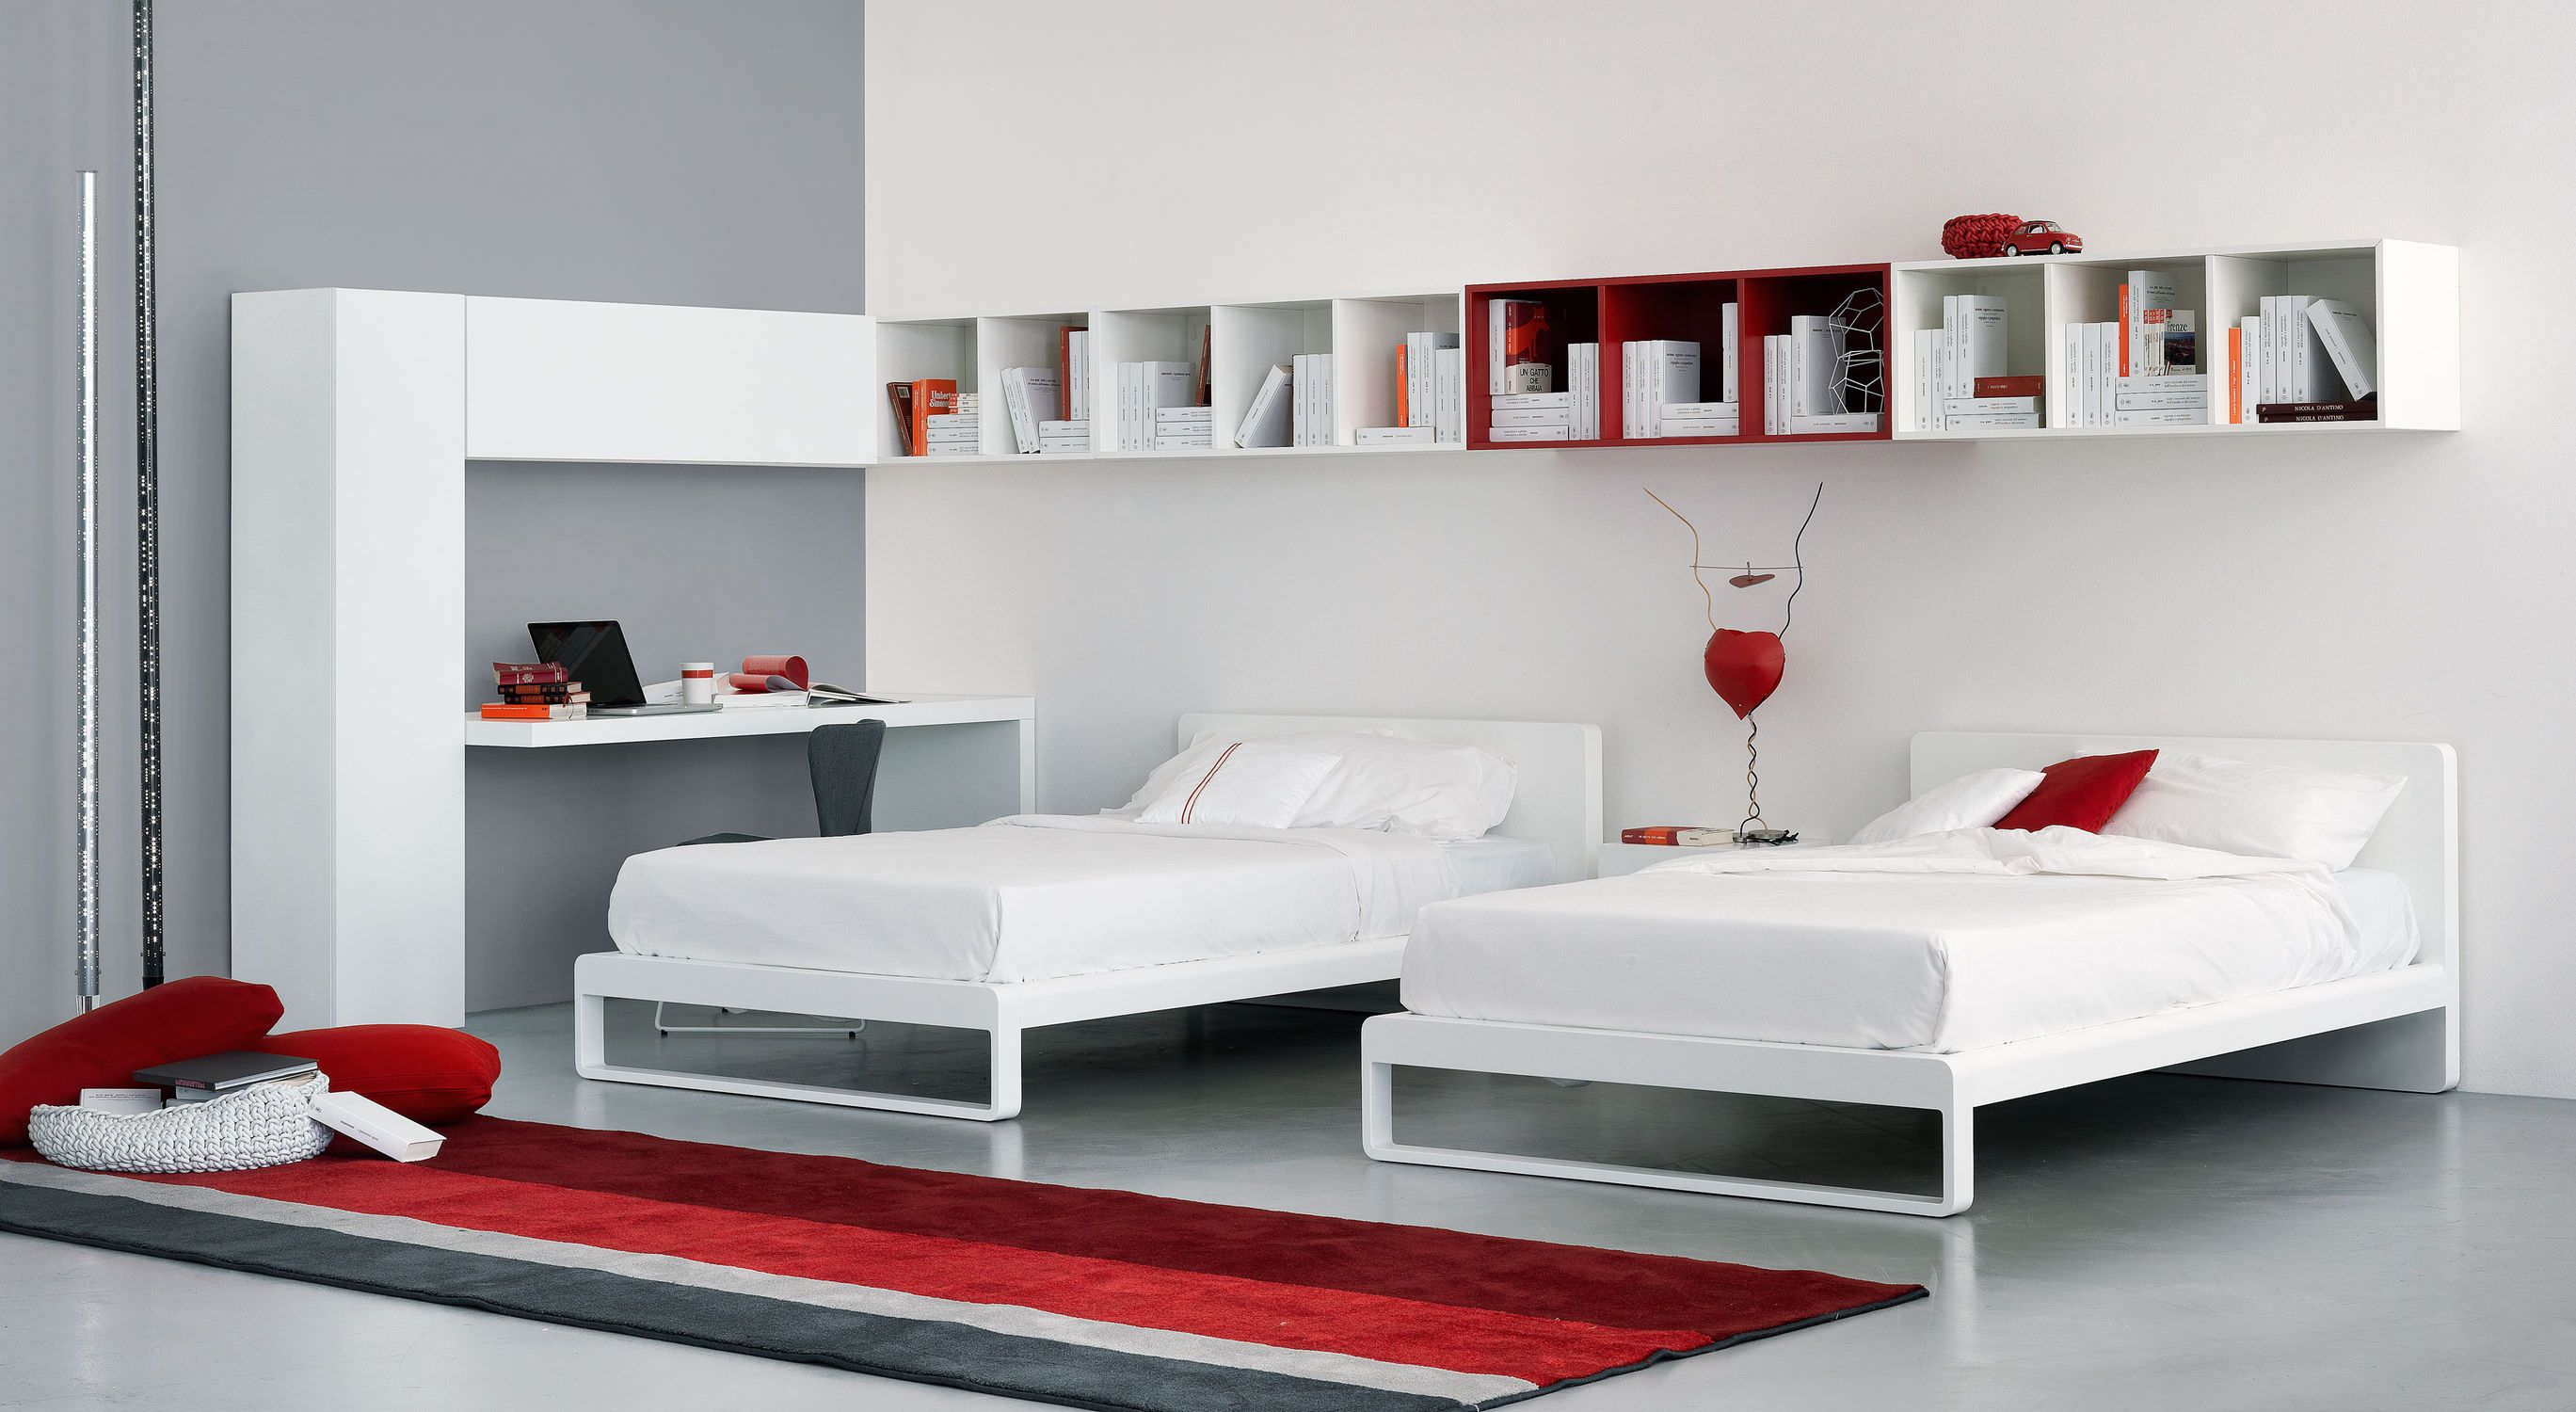 Letto singolo / moderno MARTIN by Enrico Cesana Olivieri | For the ...